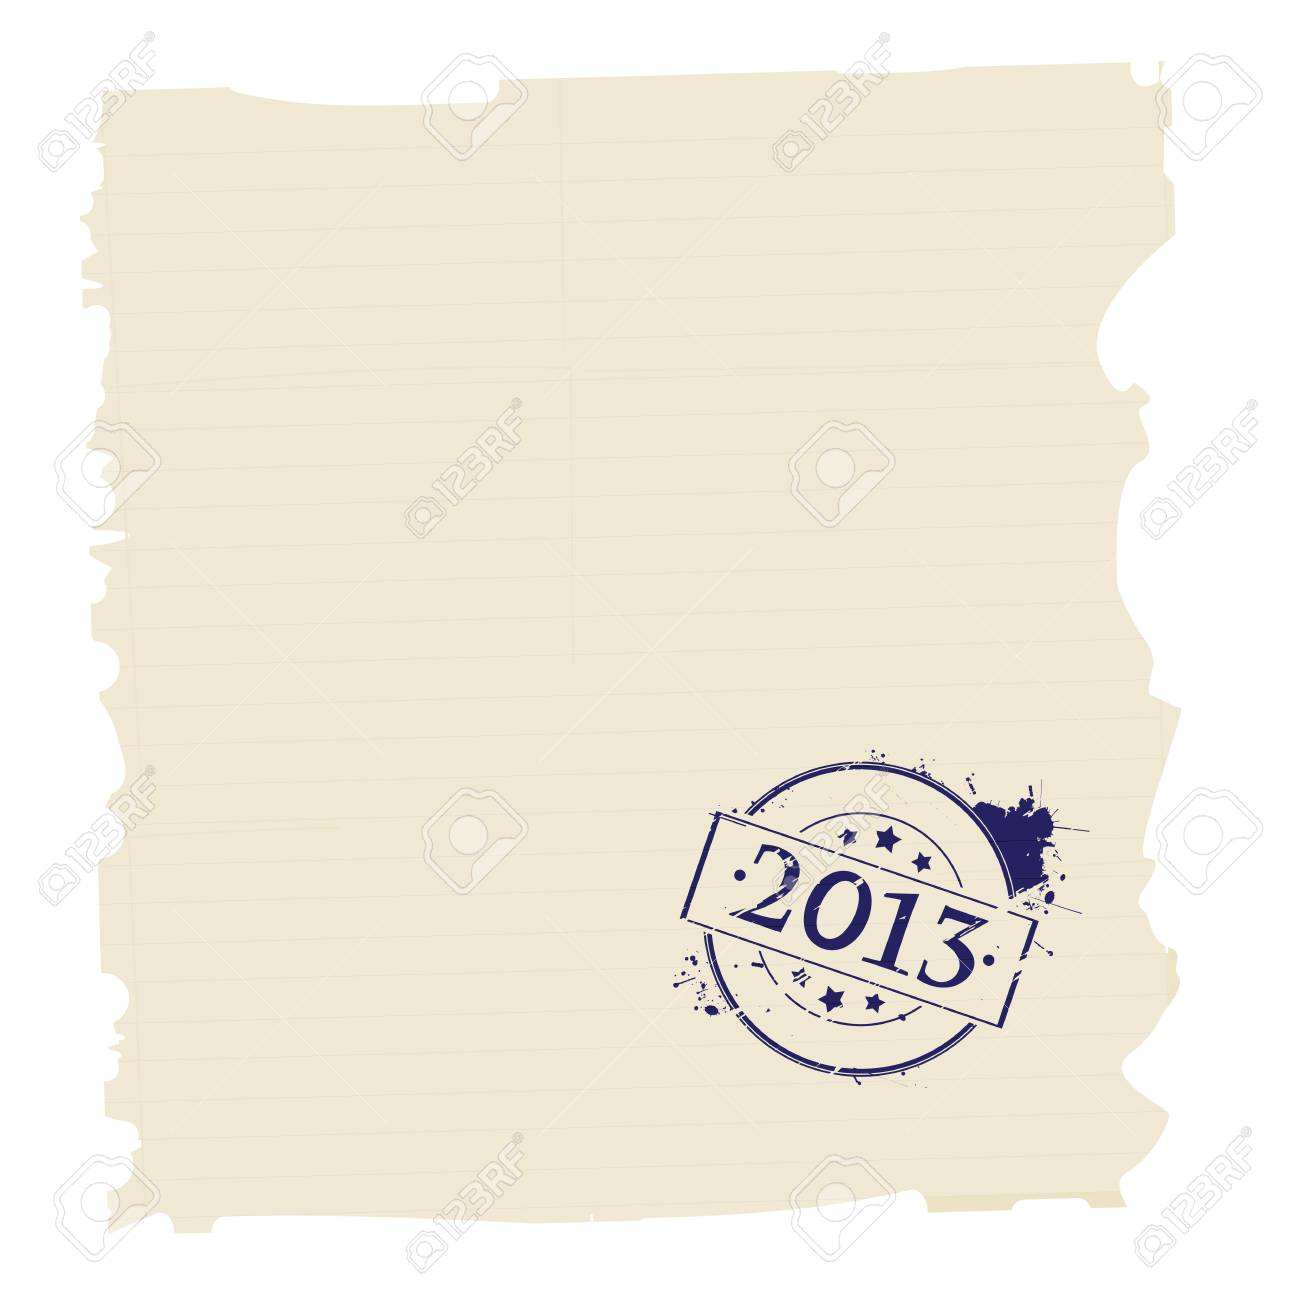 Grunge paper stamped with year 2013 sign Stock Vector - 16900640